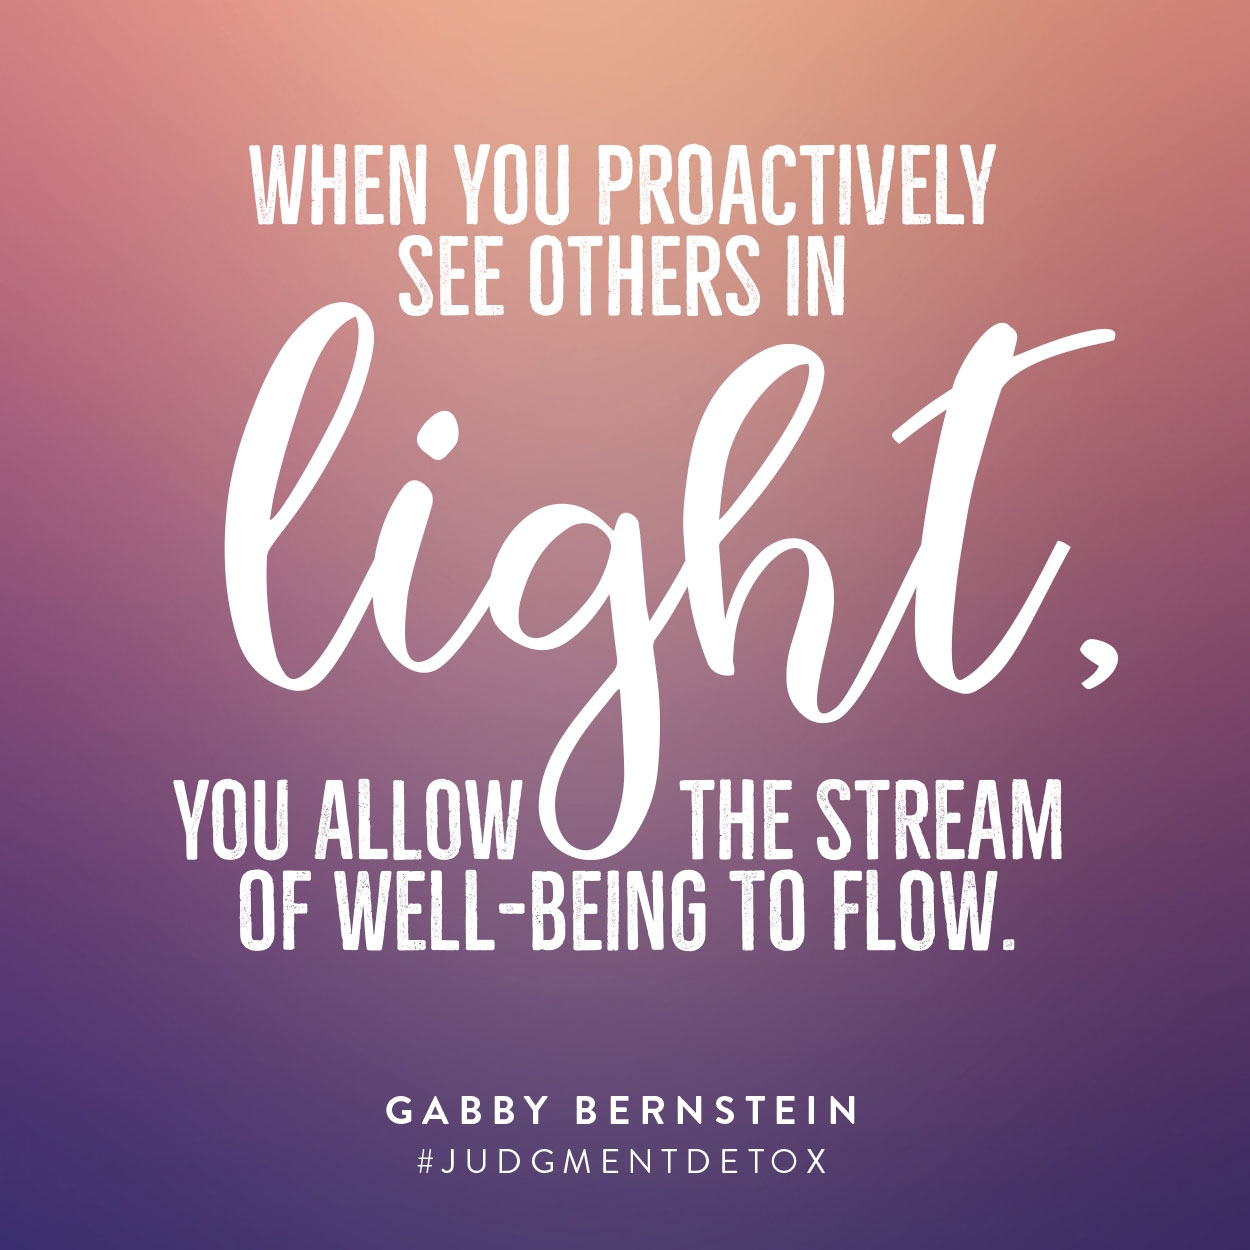 When you proactively see others in the light, you allow the stream of well-being to flow | Gabby Bernstein | Judgment Detox